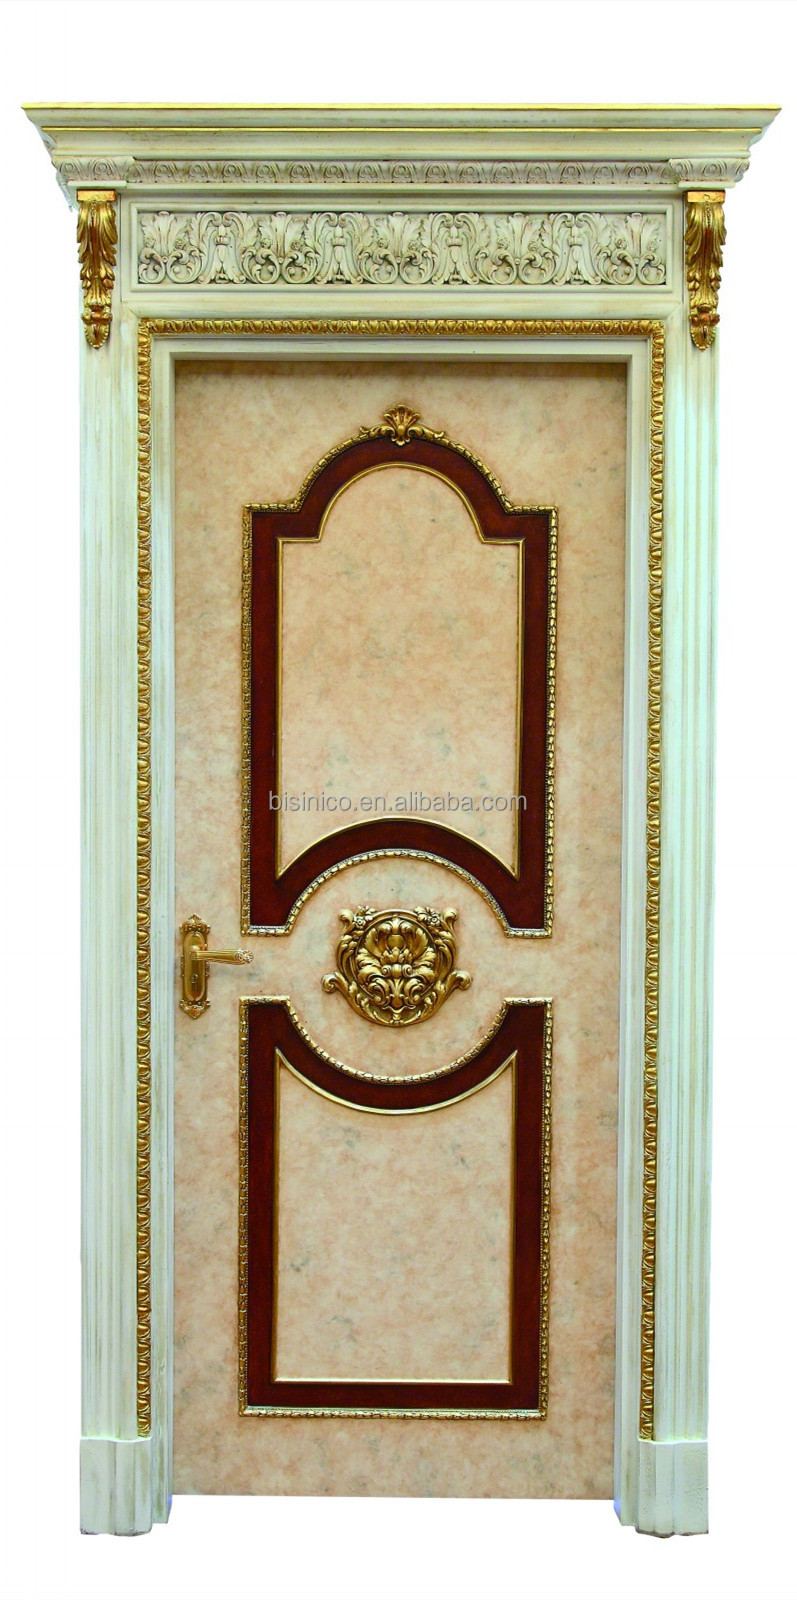 French classic style swing single interior door with golden frame french classic style swing single interior door with golden frameantique solid wood hand carved eventelaan Choice Image